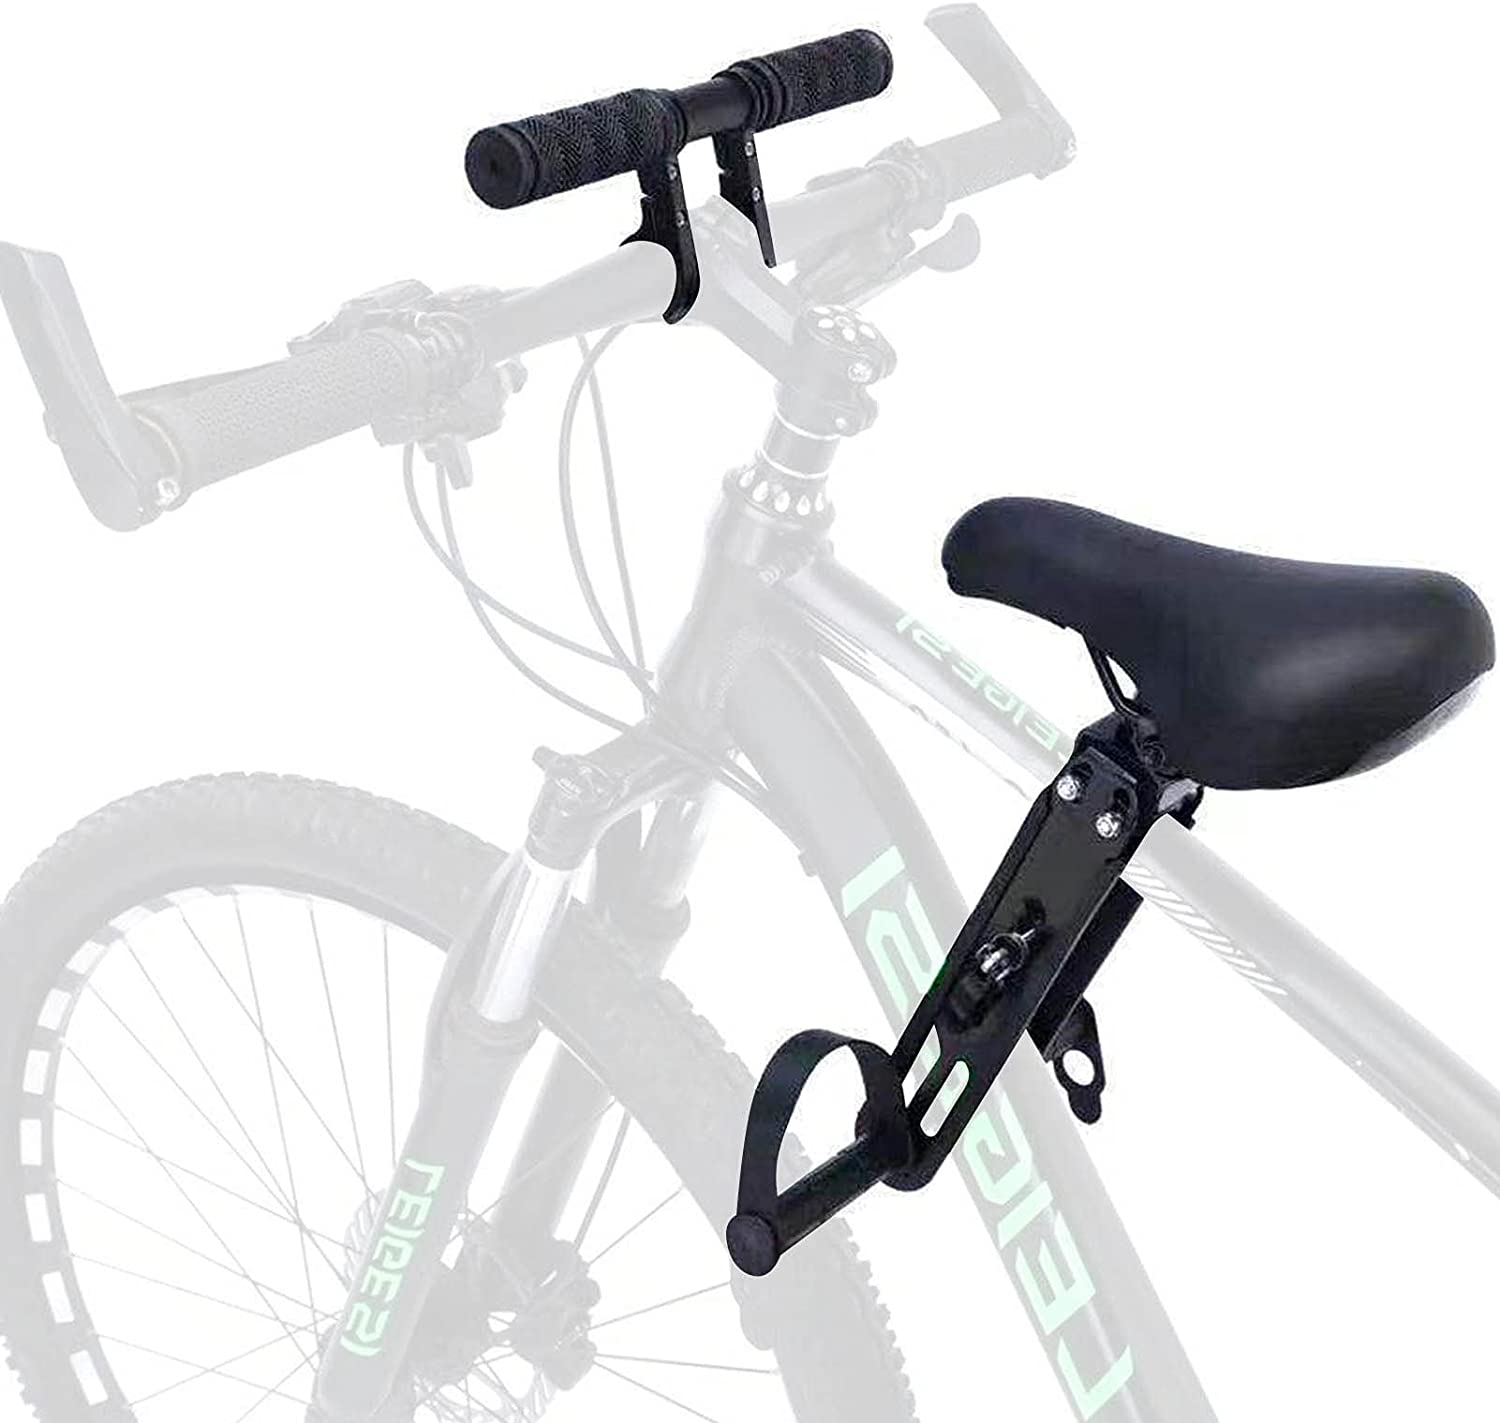 Enjovdery Kids Bike Seat for Mountain Bikes-Kids Bike Seat and Handlebar Accessory Combo Pack, Front Mounted Bicycle Seats for Children 2-5 Years (up to 48 Pound) for All Mountain Bikes